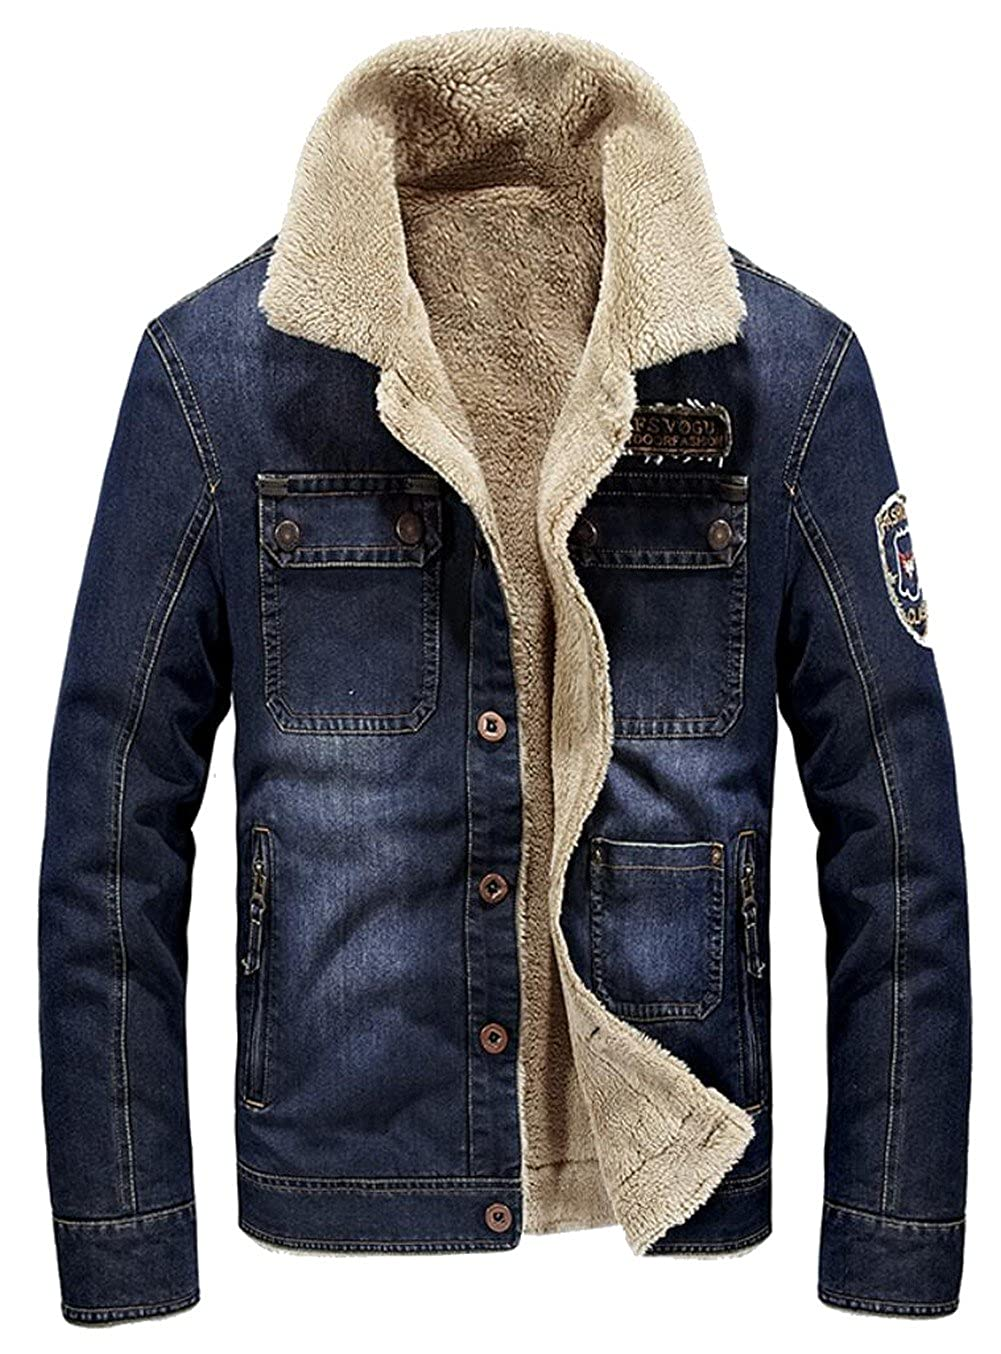 JIAX Men's Winter Thicken Rugged Wear Cargo Denim Jacket Lambs Wool Lining